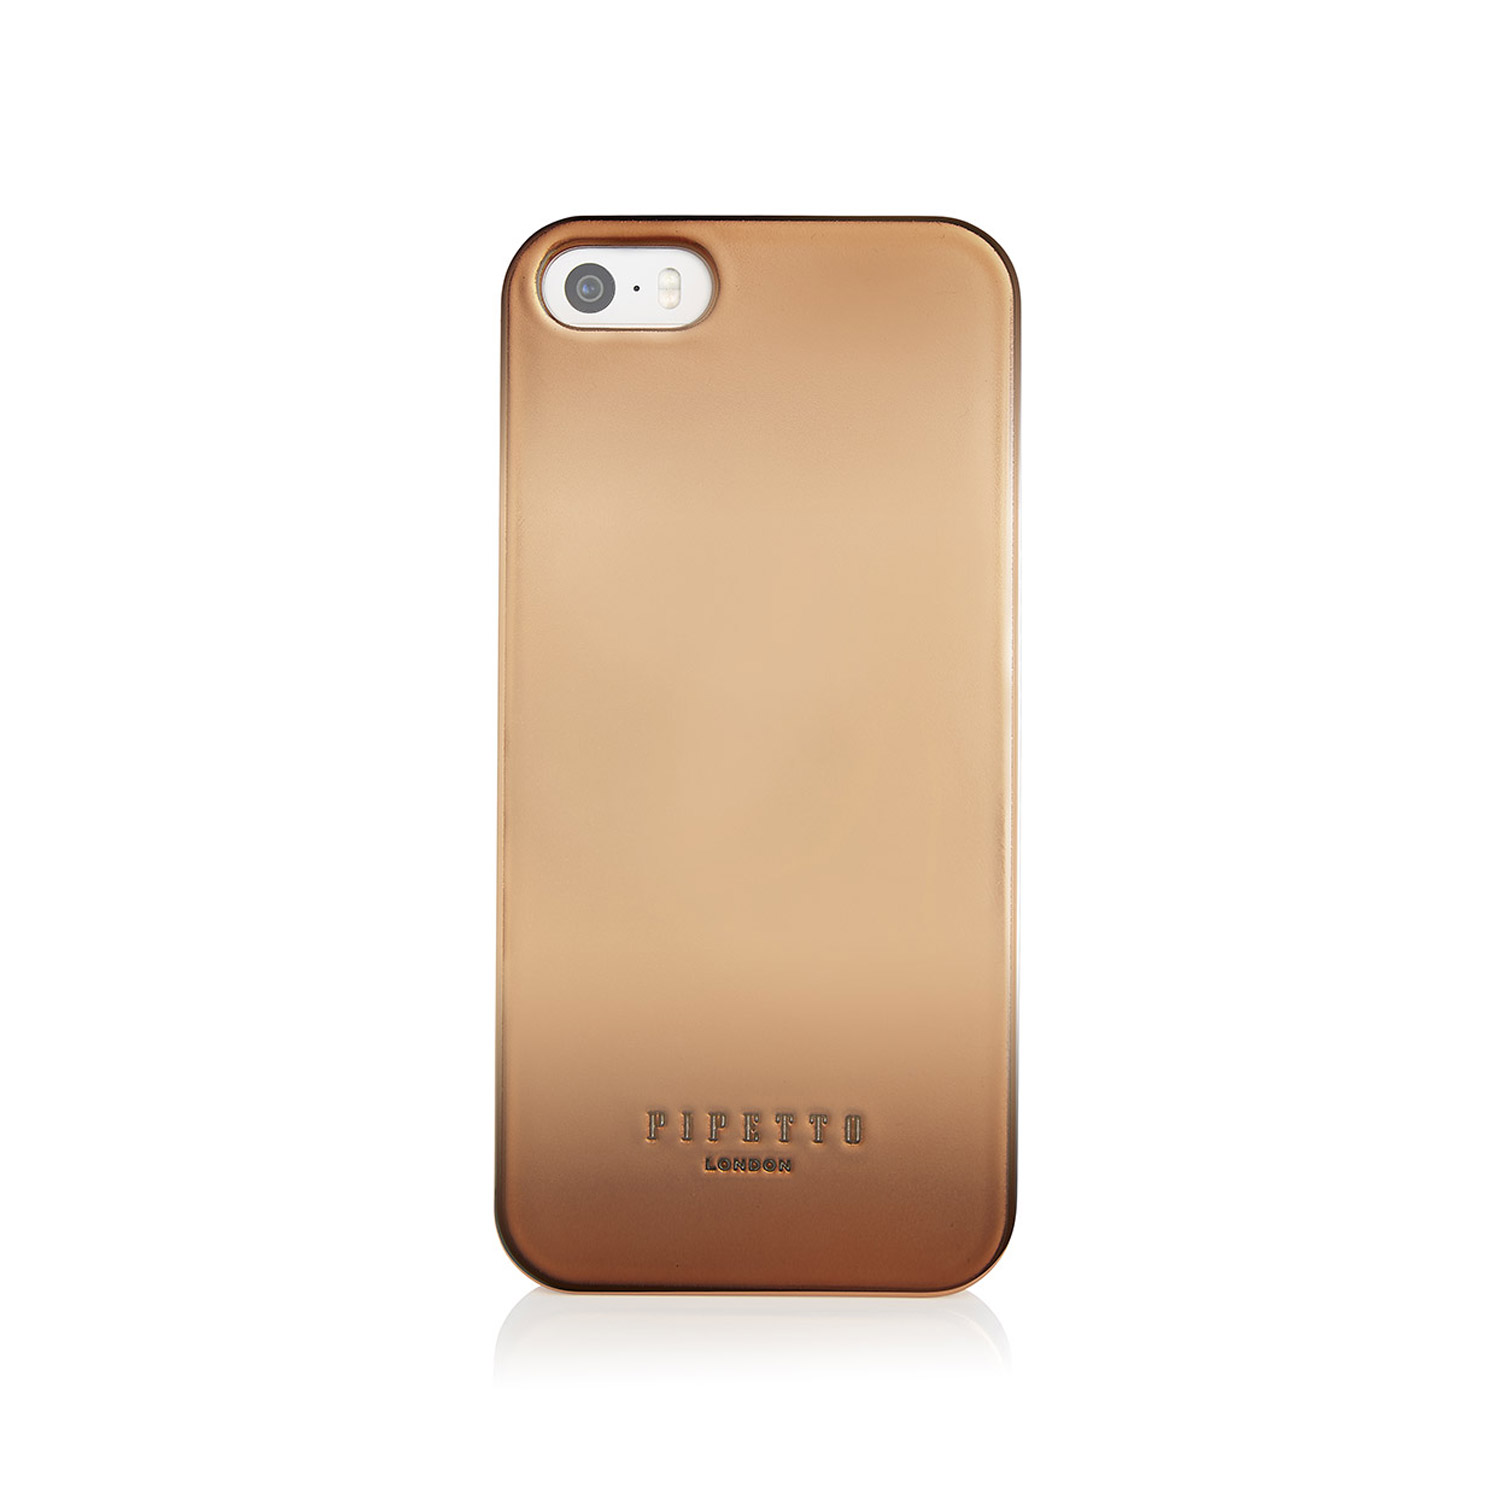 iphone se iphone 5 iphone 5s rose gold shell snap case. Black Bedroom Furniture Sets. Home Design Ideas